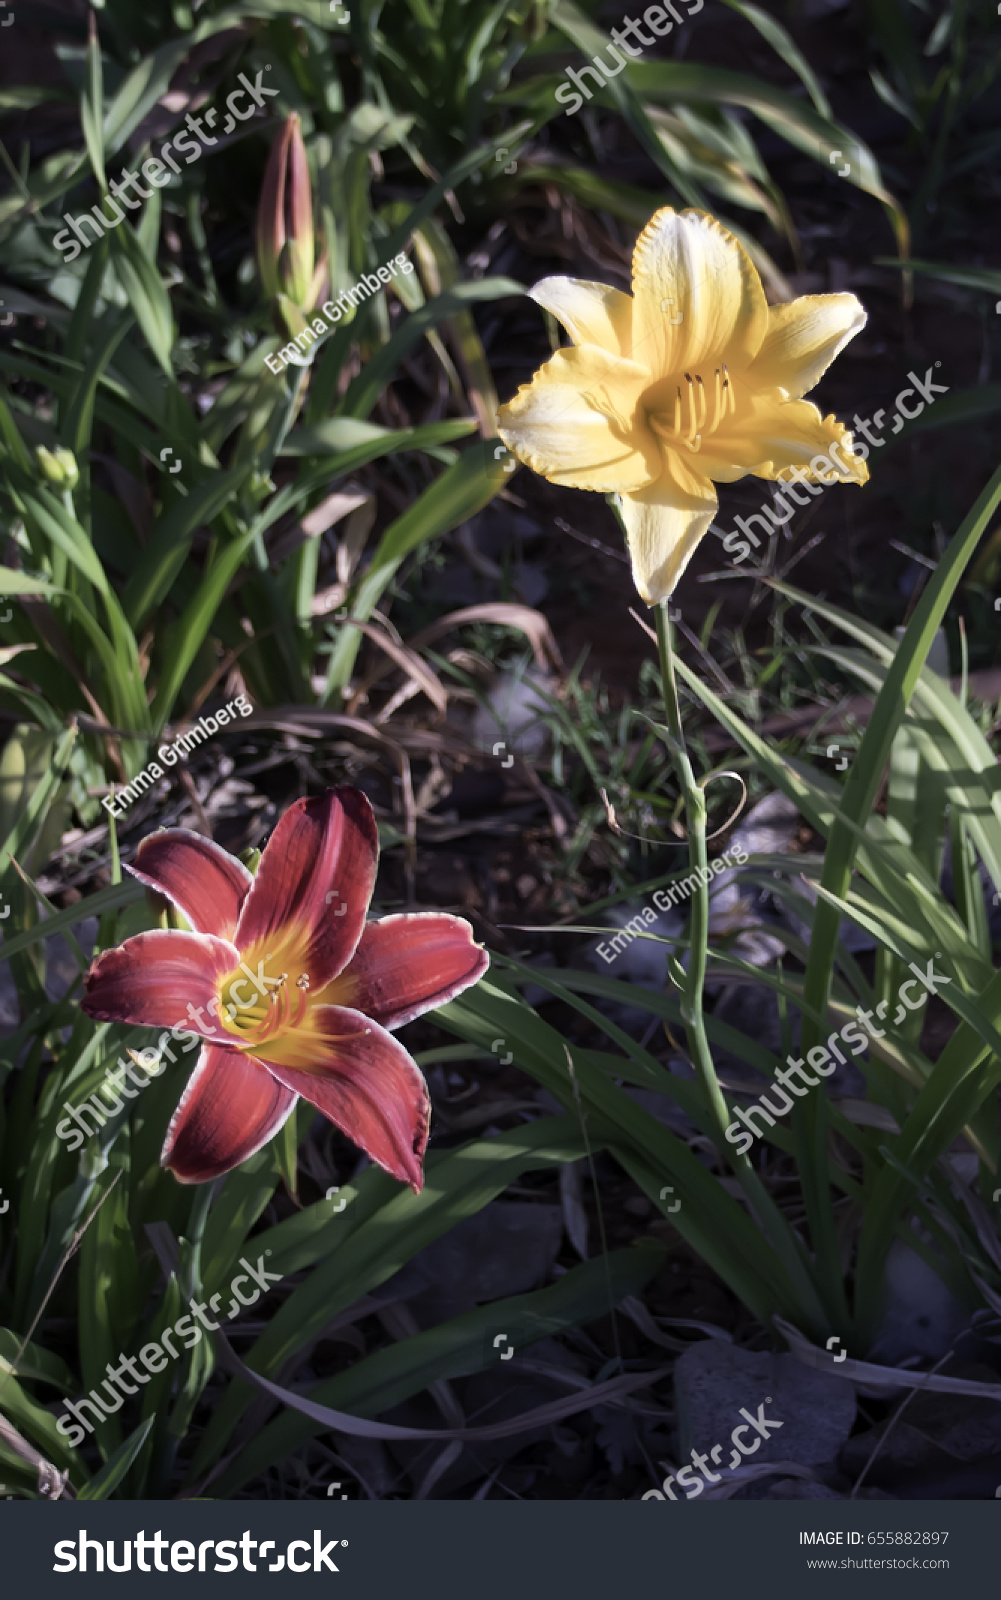 Different colors lily flowers heads closeup stock photo 655882897 different colors lily flowers heads close up in foliage dhlflorist Choice Image